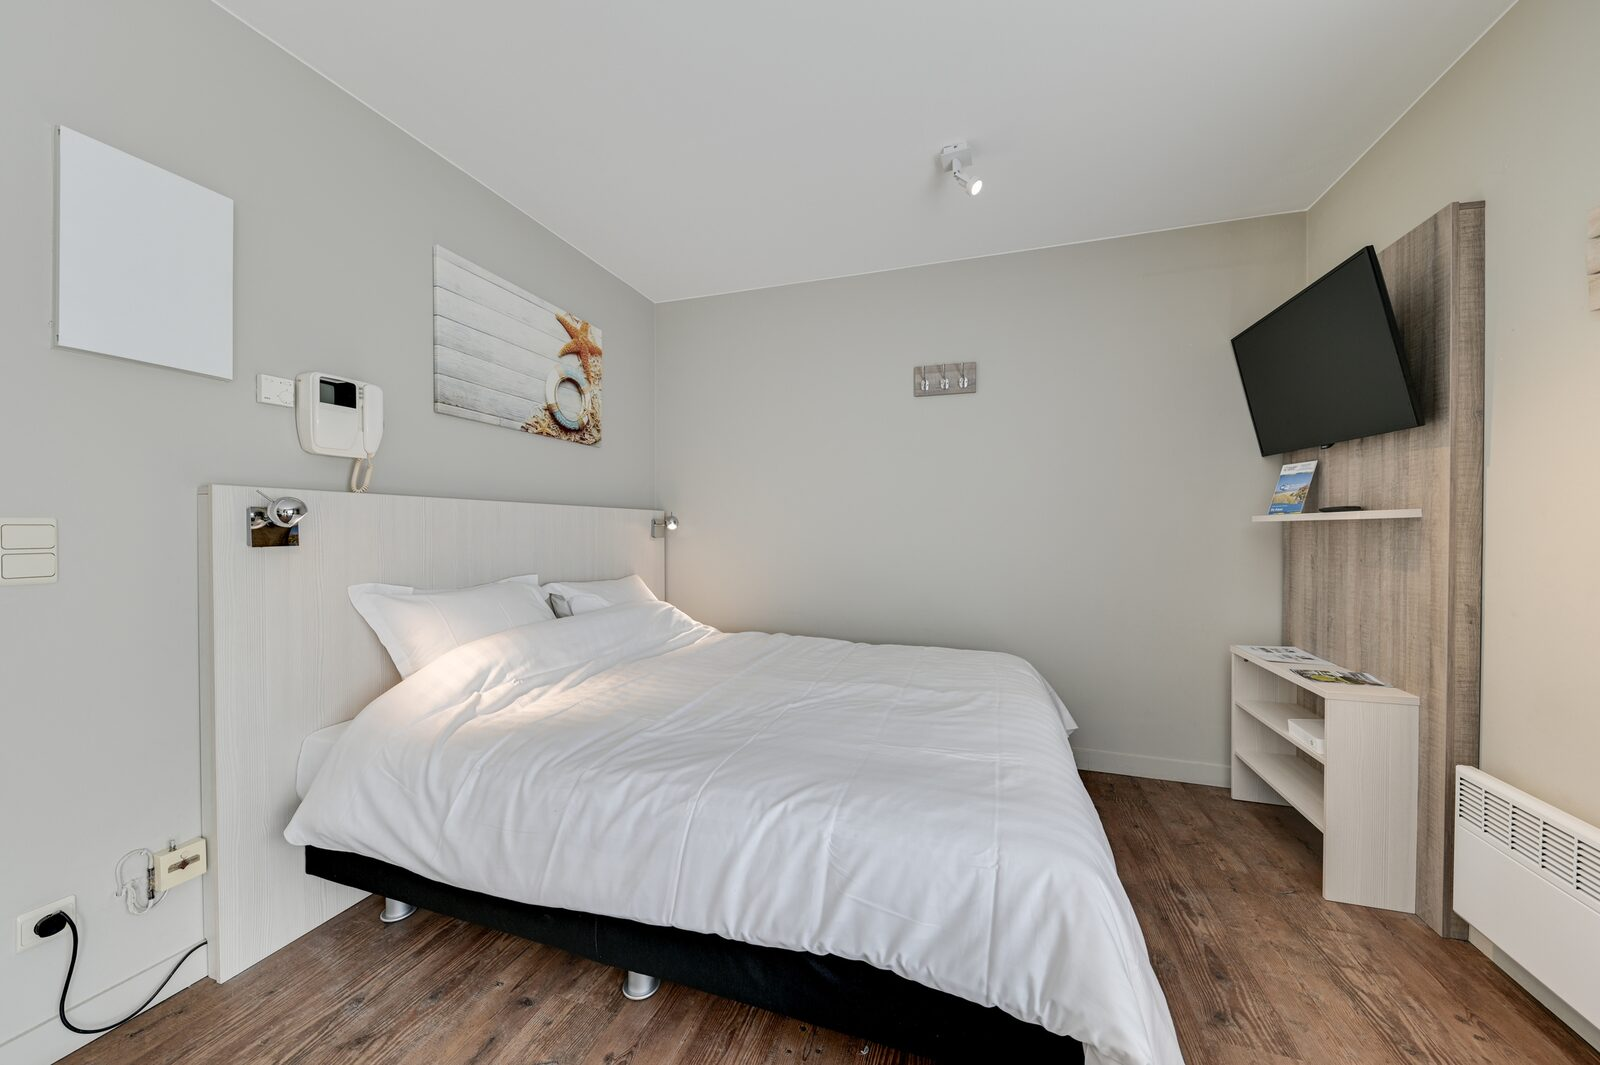 Holiday Suite for 2 people with bedroom